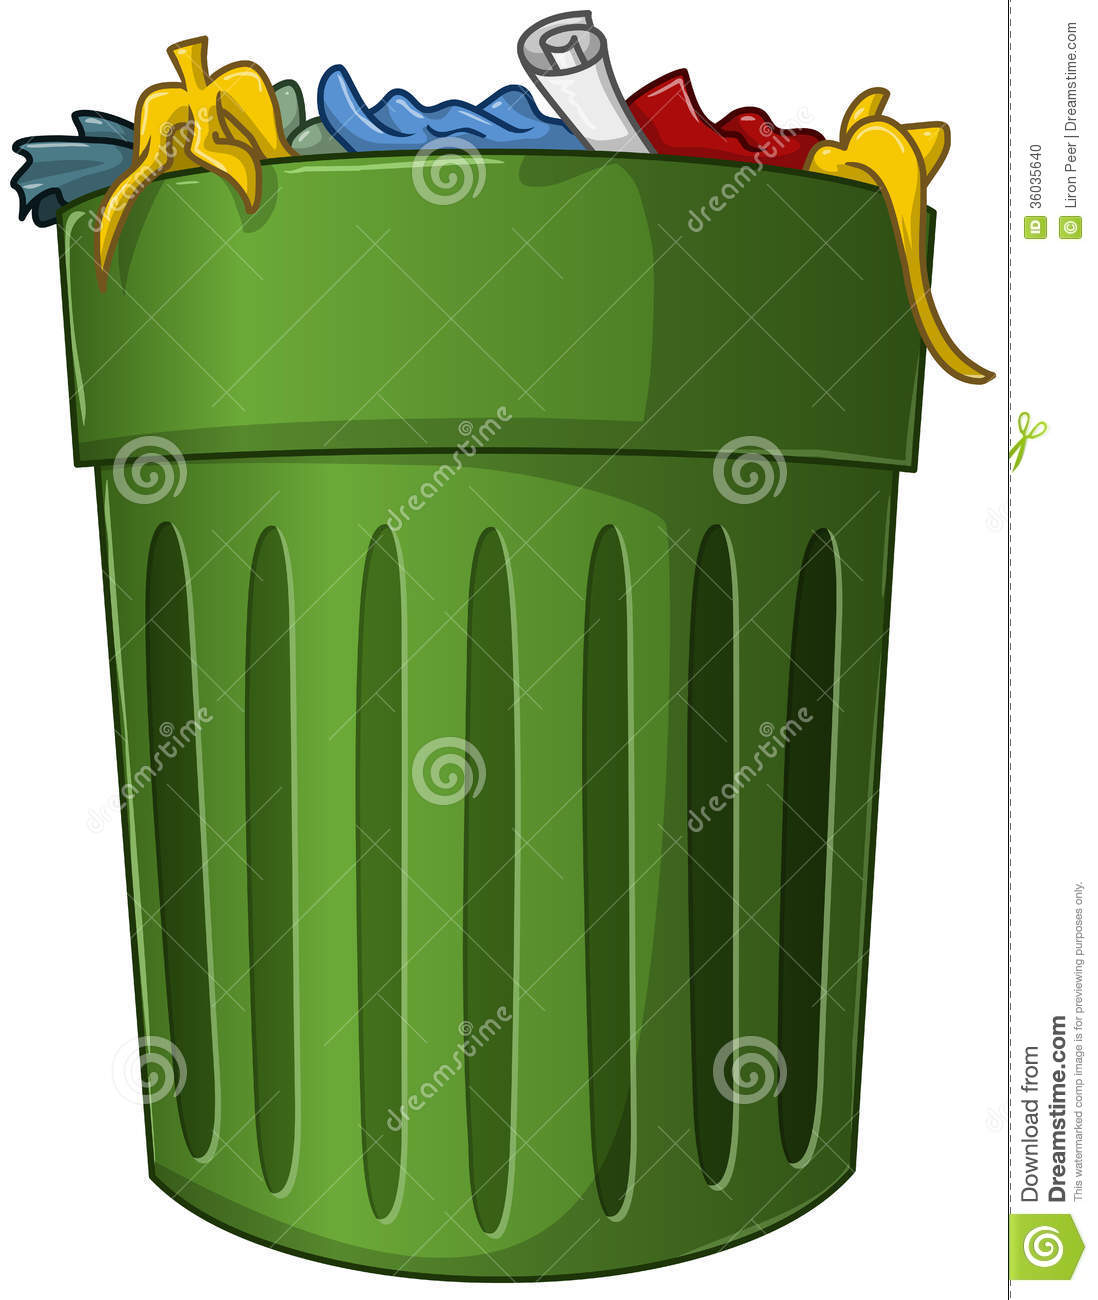 Image Result For Cute Trash Cans